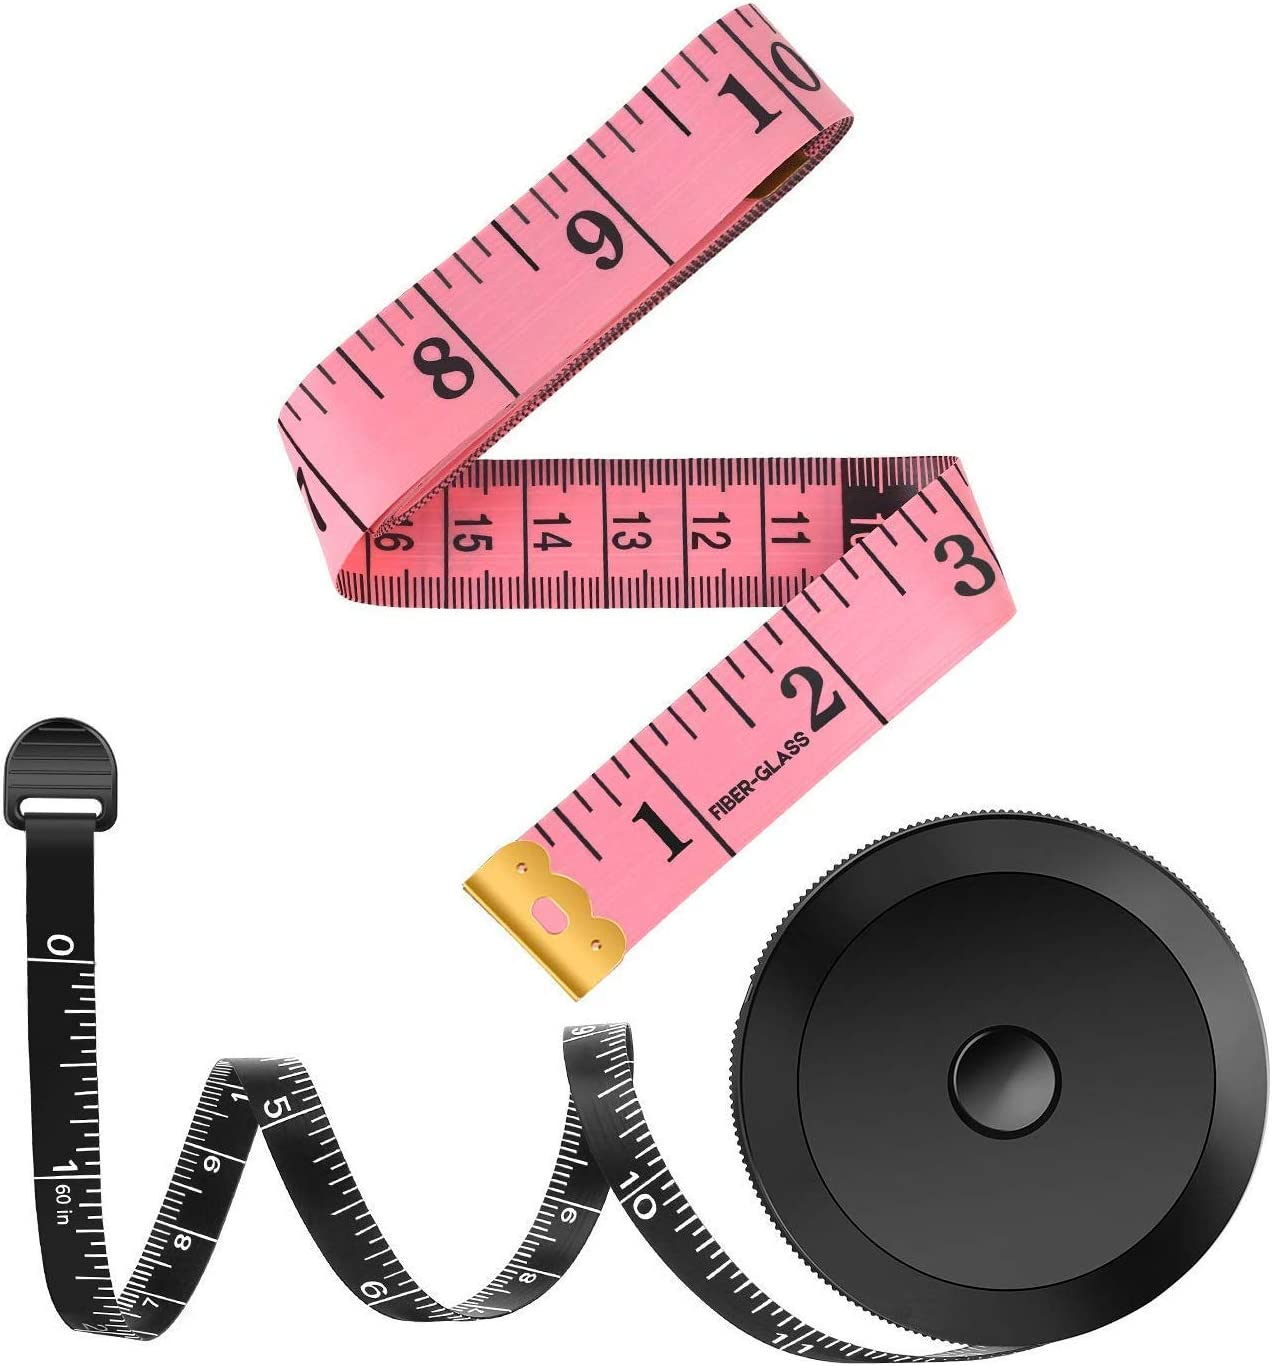 2 Pack Tape Measure for Body Sewing by iBayam